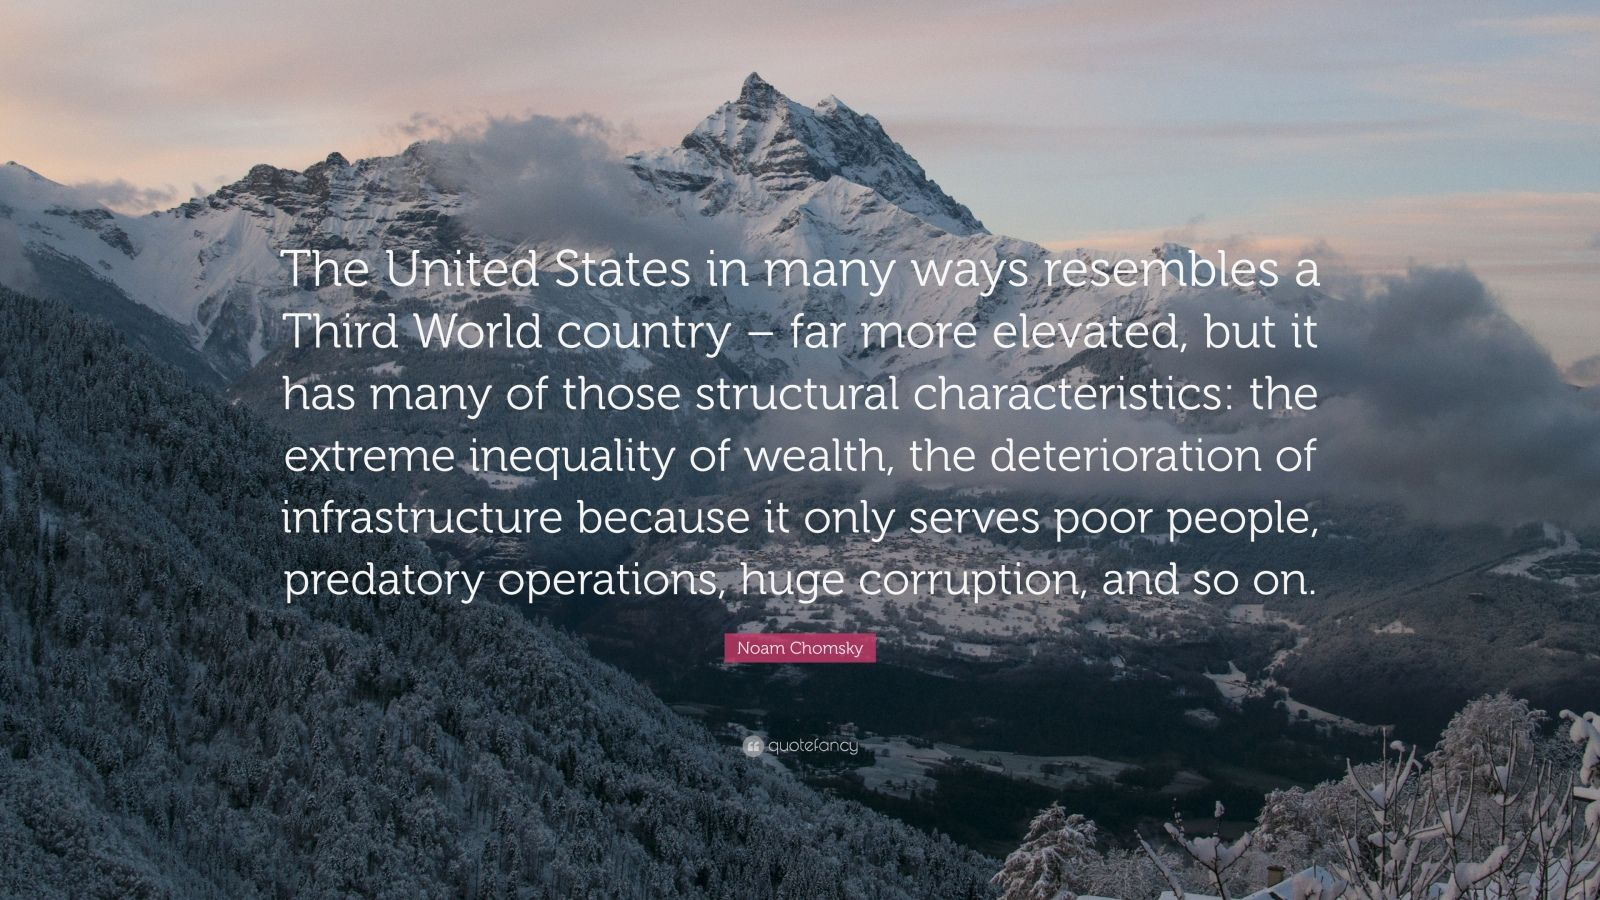 """Noam Chomsky Quote: """"The United States in many ways resembles a Third World country – far more elevated, but it has many of those structural characteristics: the extreme inequality of wealth, the deterioration of infrastructure because it only serves poor people, predatory operations, huge corruption, and so on."""""""